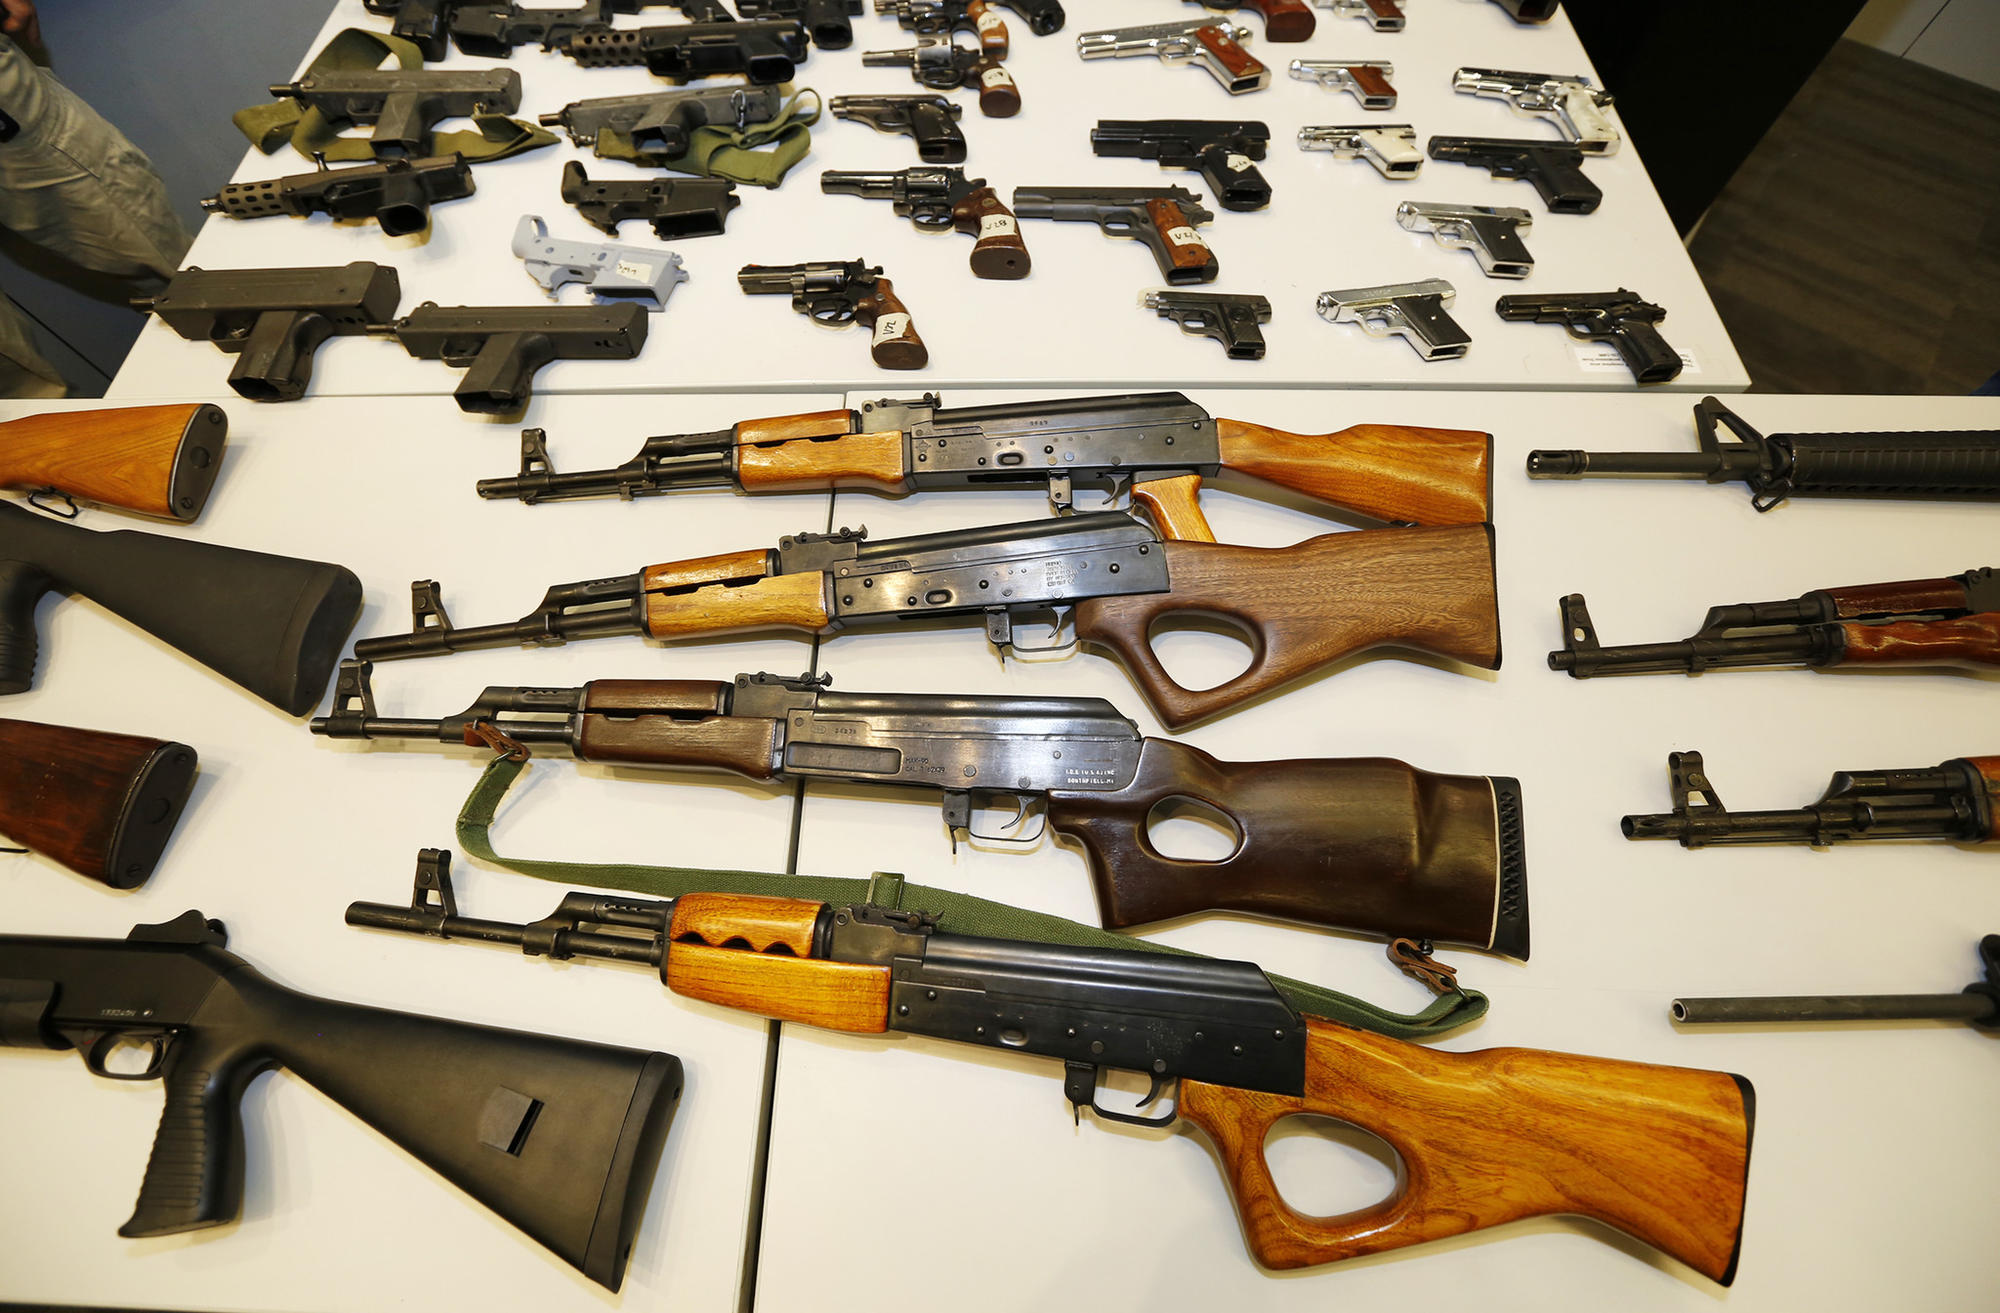 The Los Angeles Police Department displays weapons collected during a daylong gun buyback program in May.